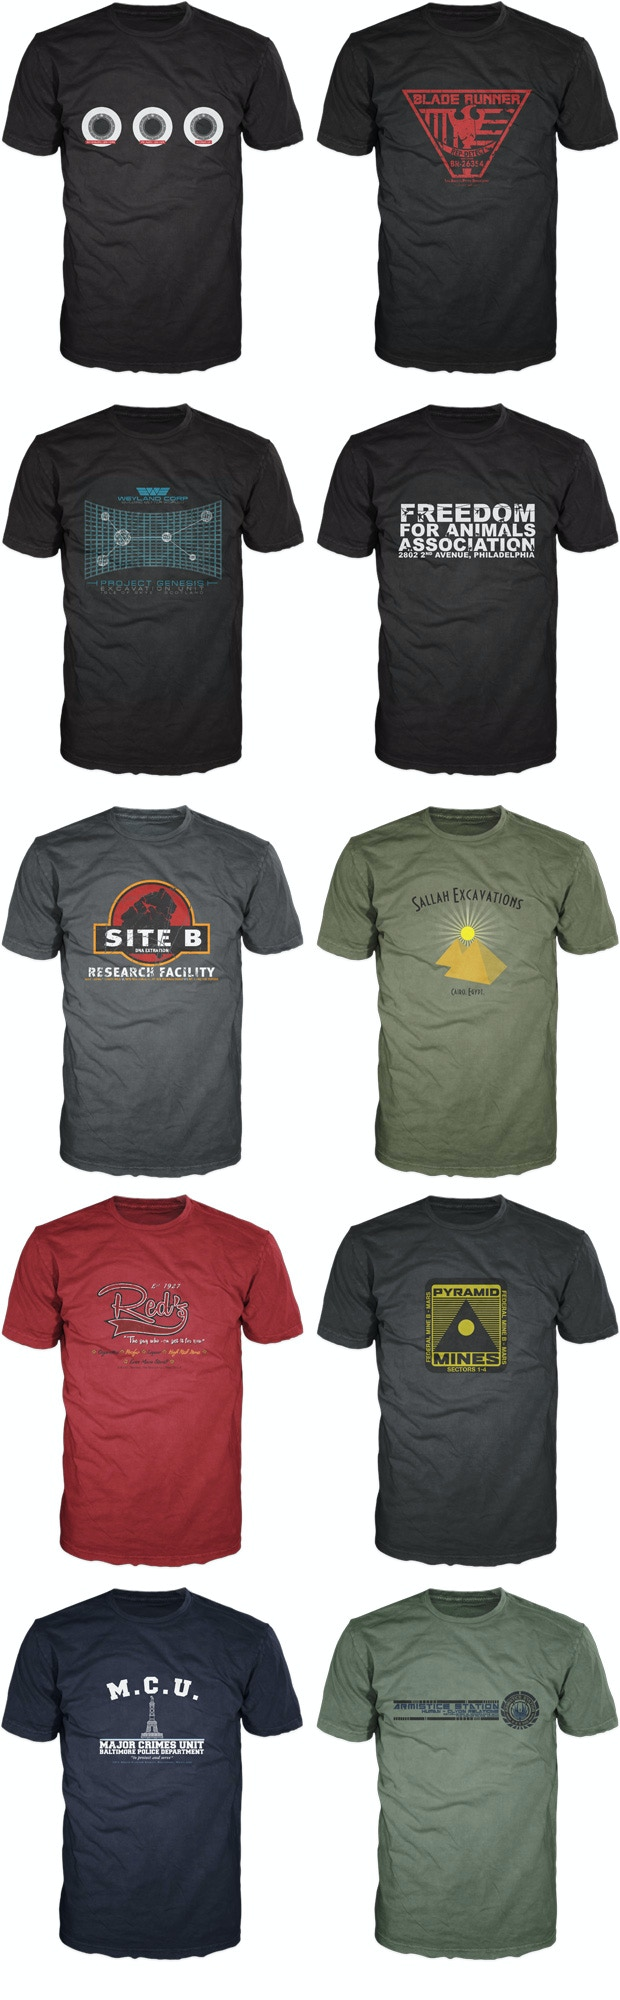 All our designs together. Want them all?